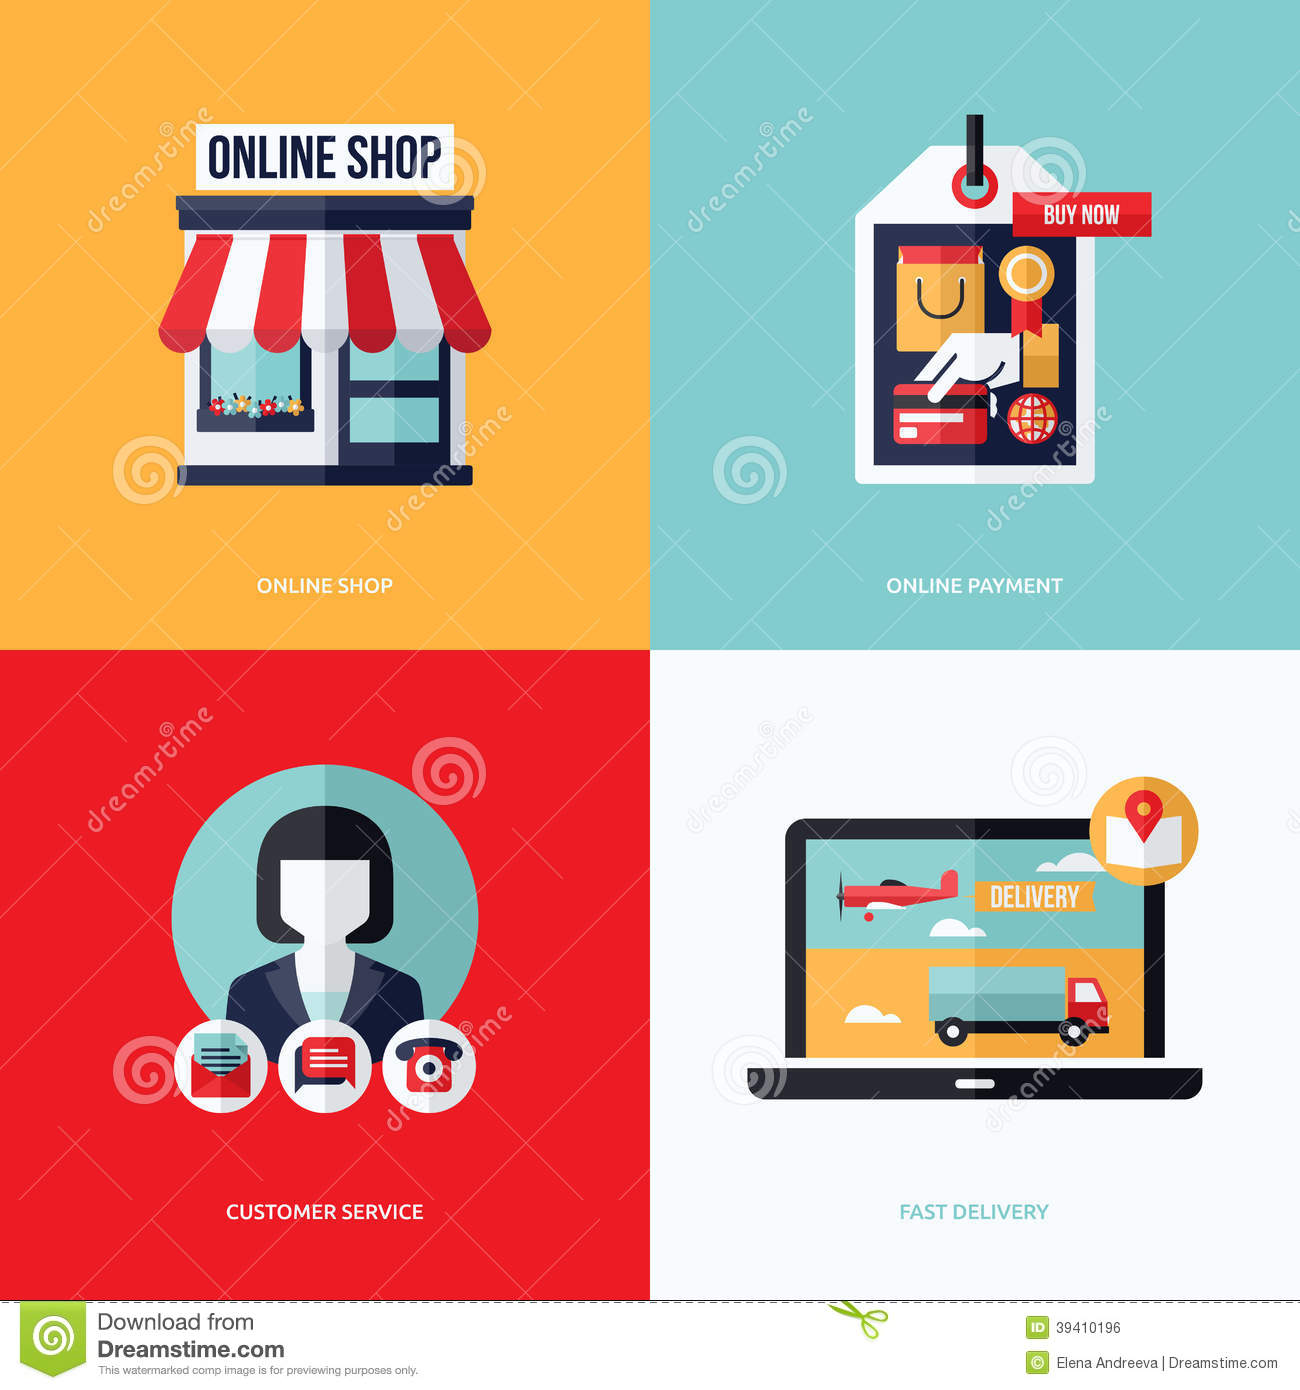 Design Online Shop Flat Vector Design With E Commerce And Online Shopping Icons Stock